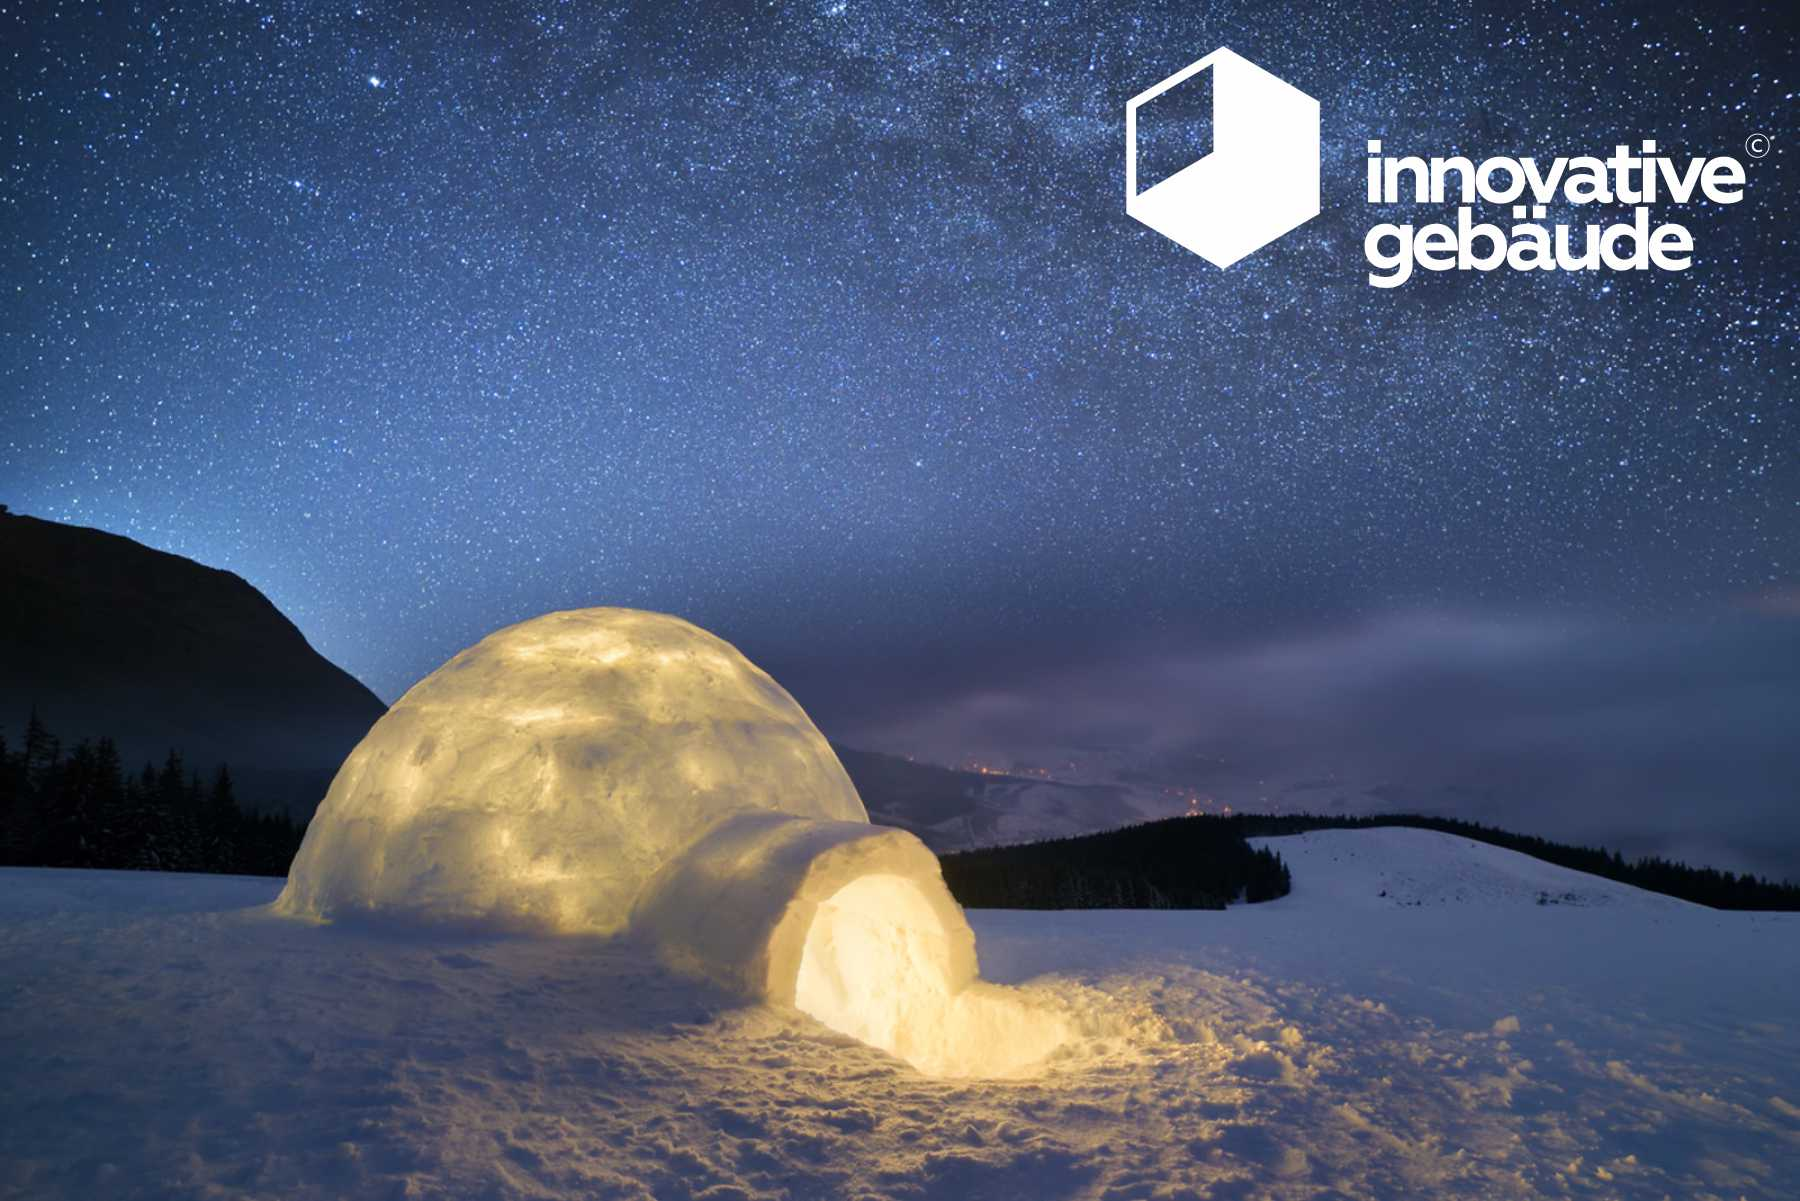 IG Innovative Gebude COOL durch den Sommer IGLU 1